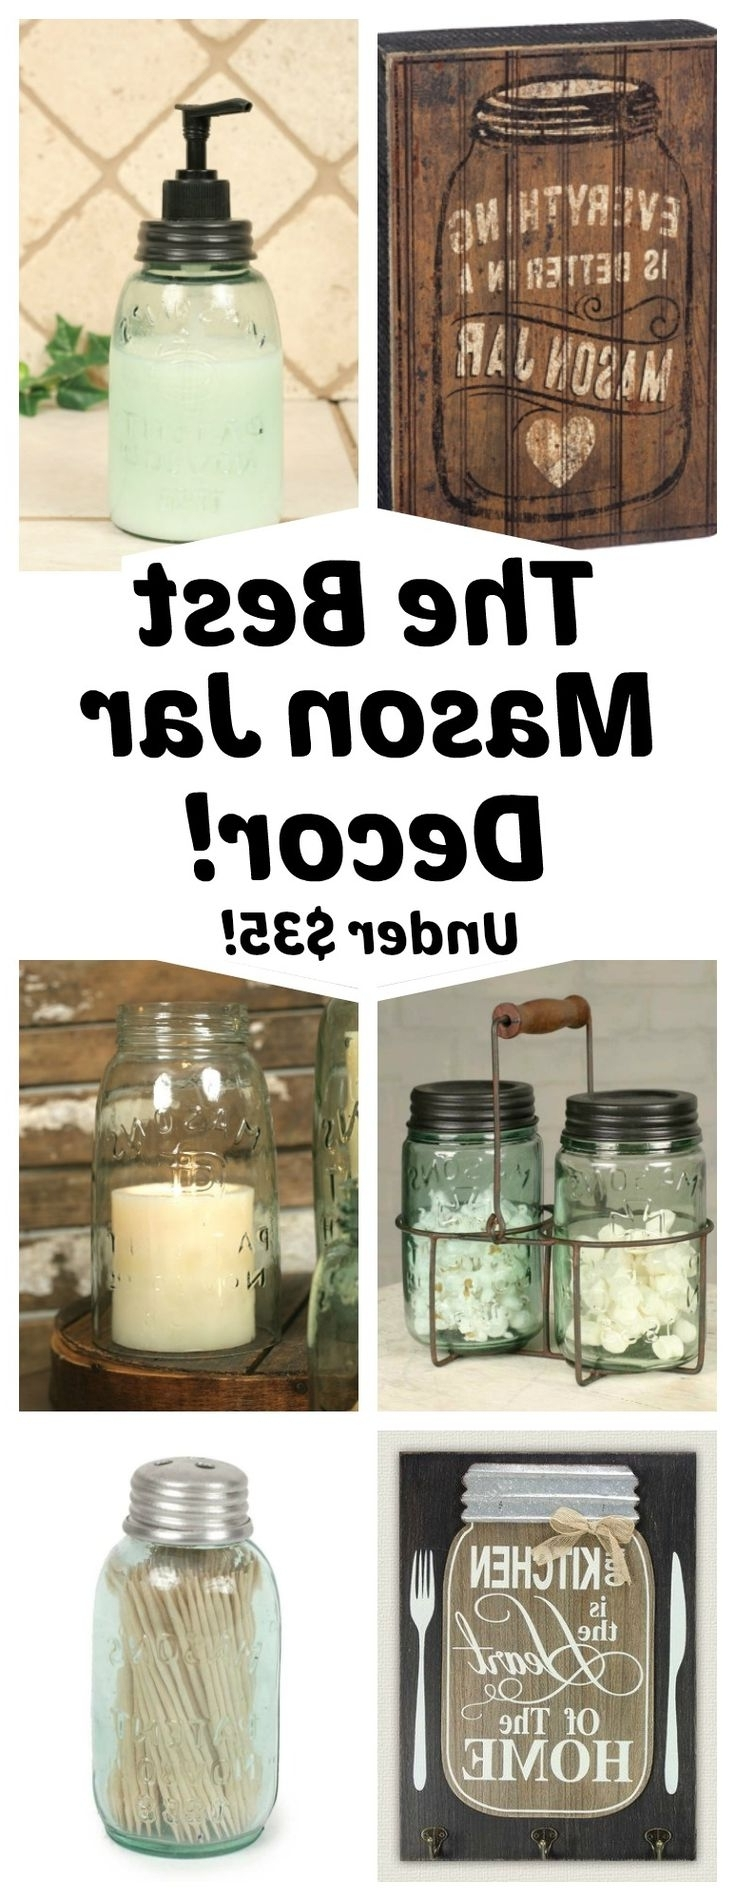 39 Mason Jar Wall Art, Pallet Home Decor Projects Pallets Furniture intended for Current Mason Jar Wall Art